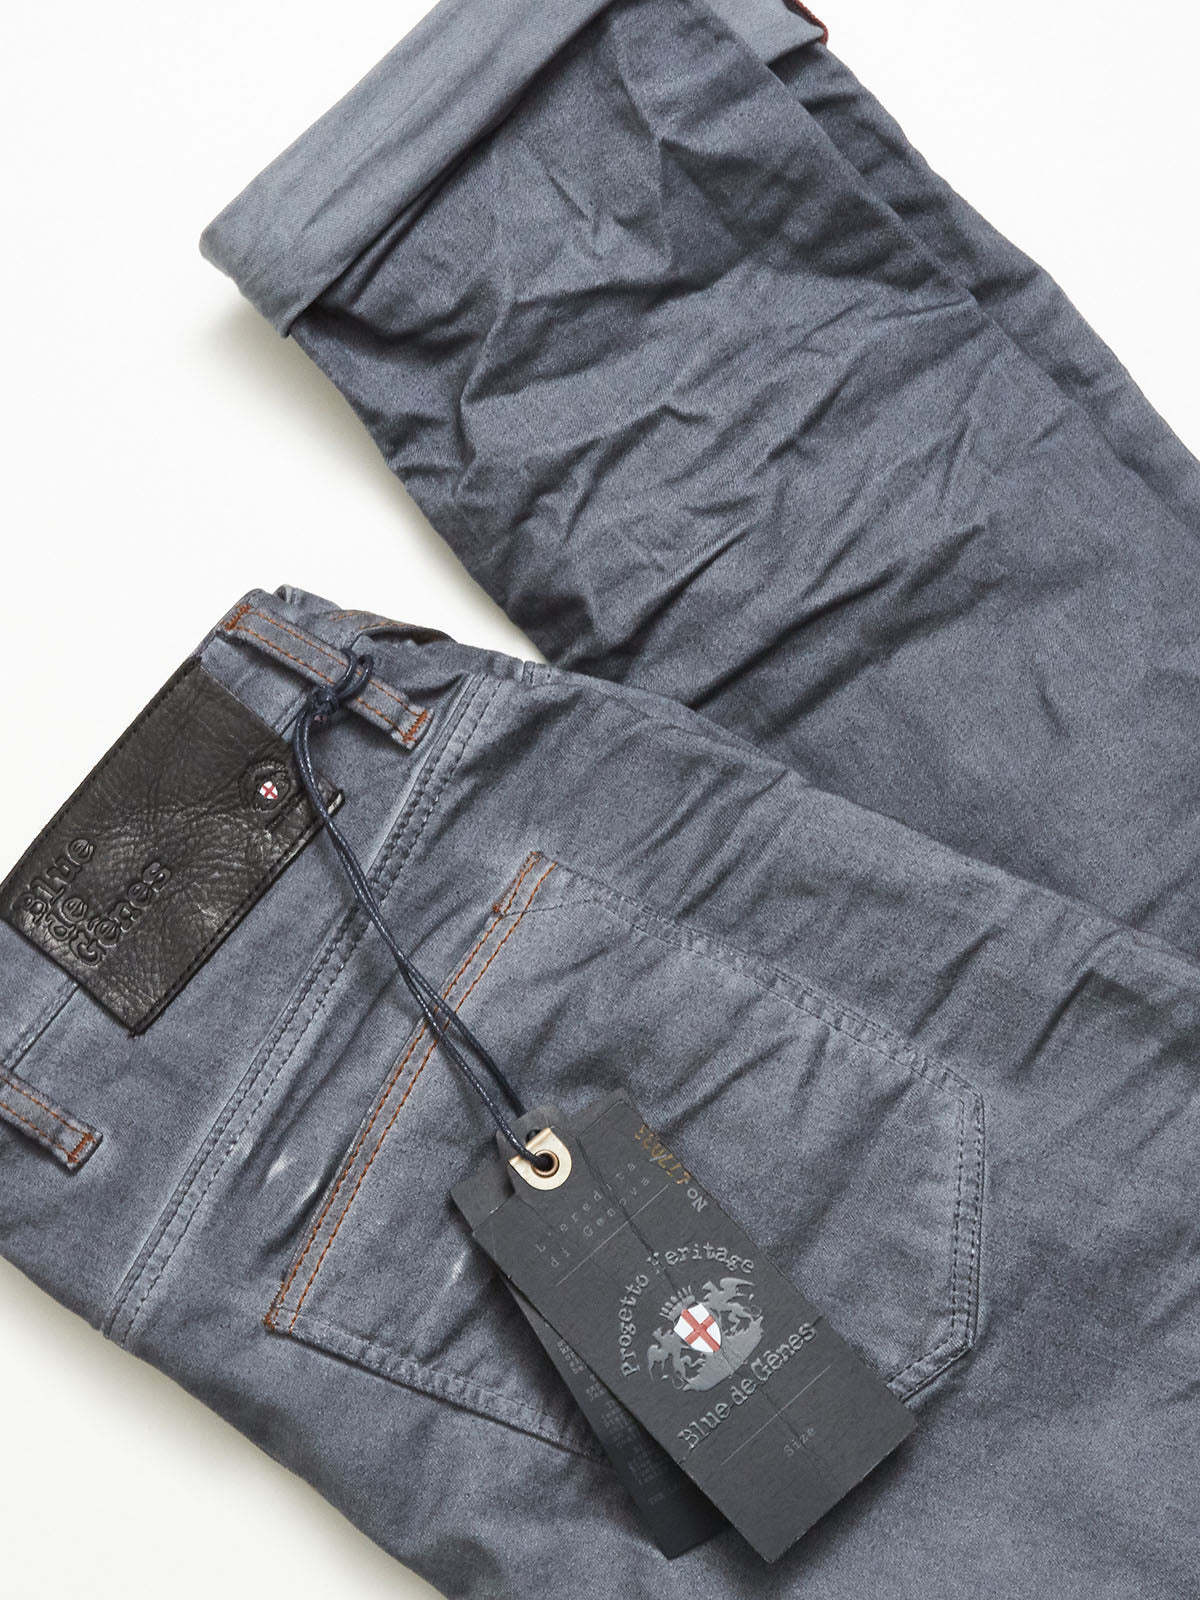 Repi Oil Pants Fungi Grey